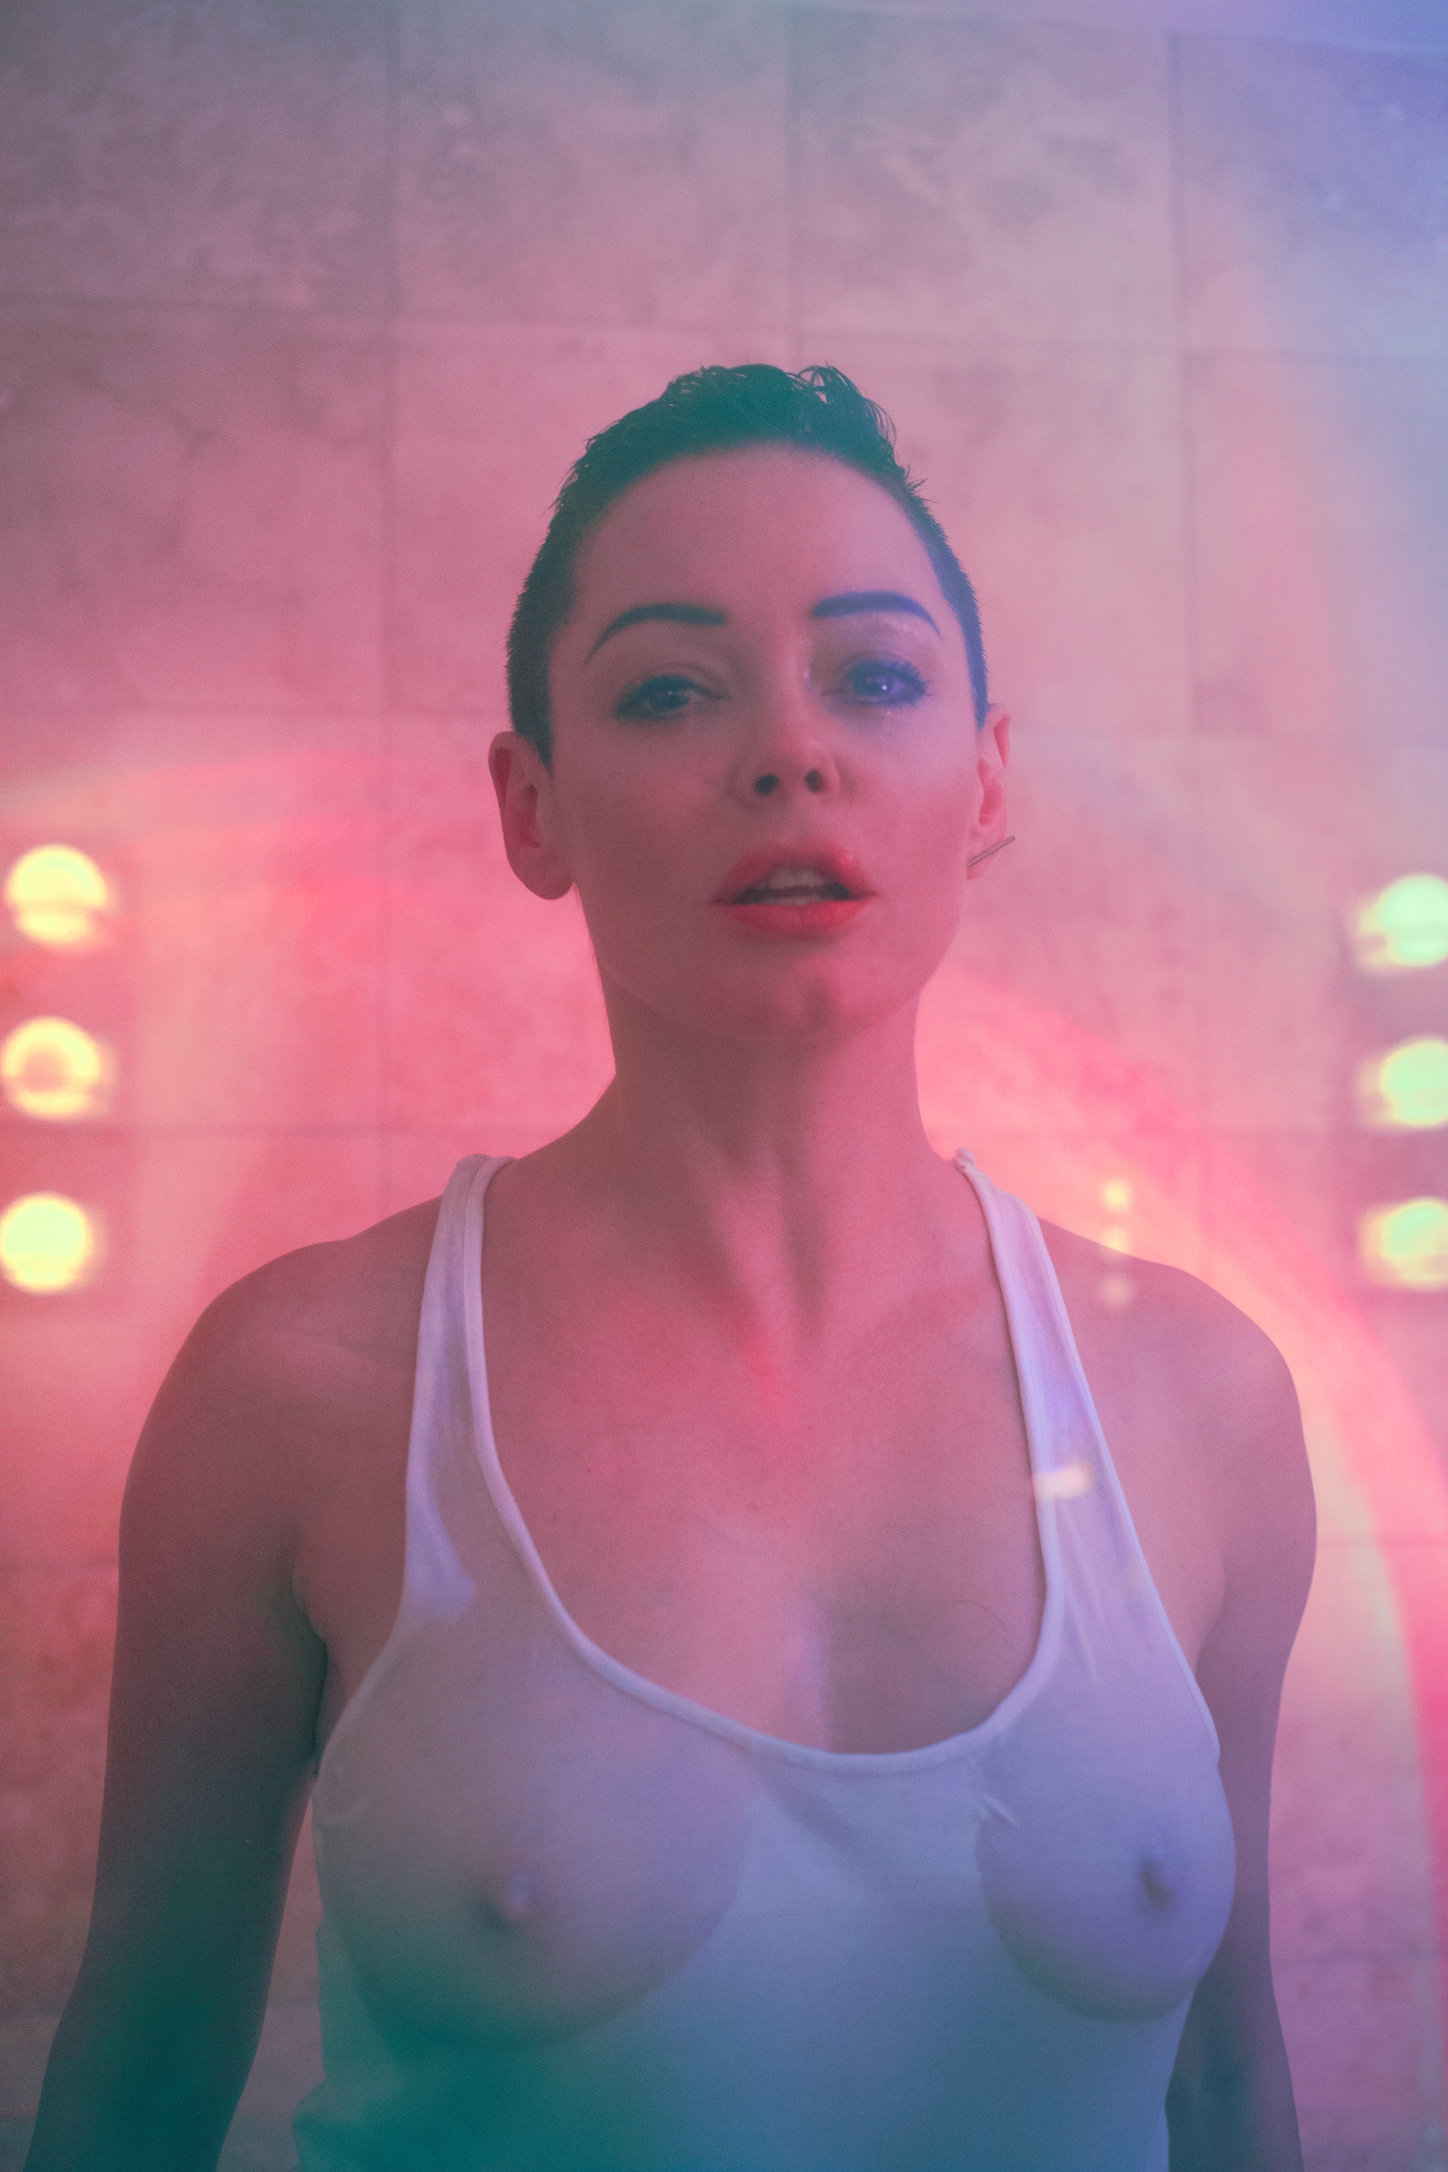 POSTURE MAGAZINE_ROSE MCGOWAN_BATH3.jpg